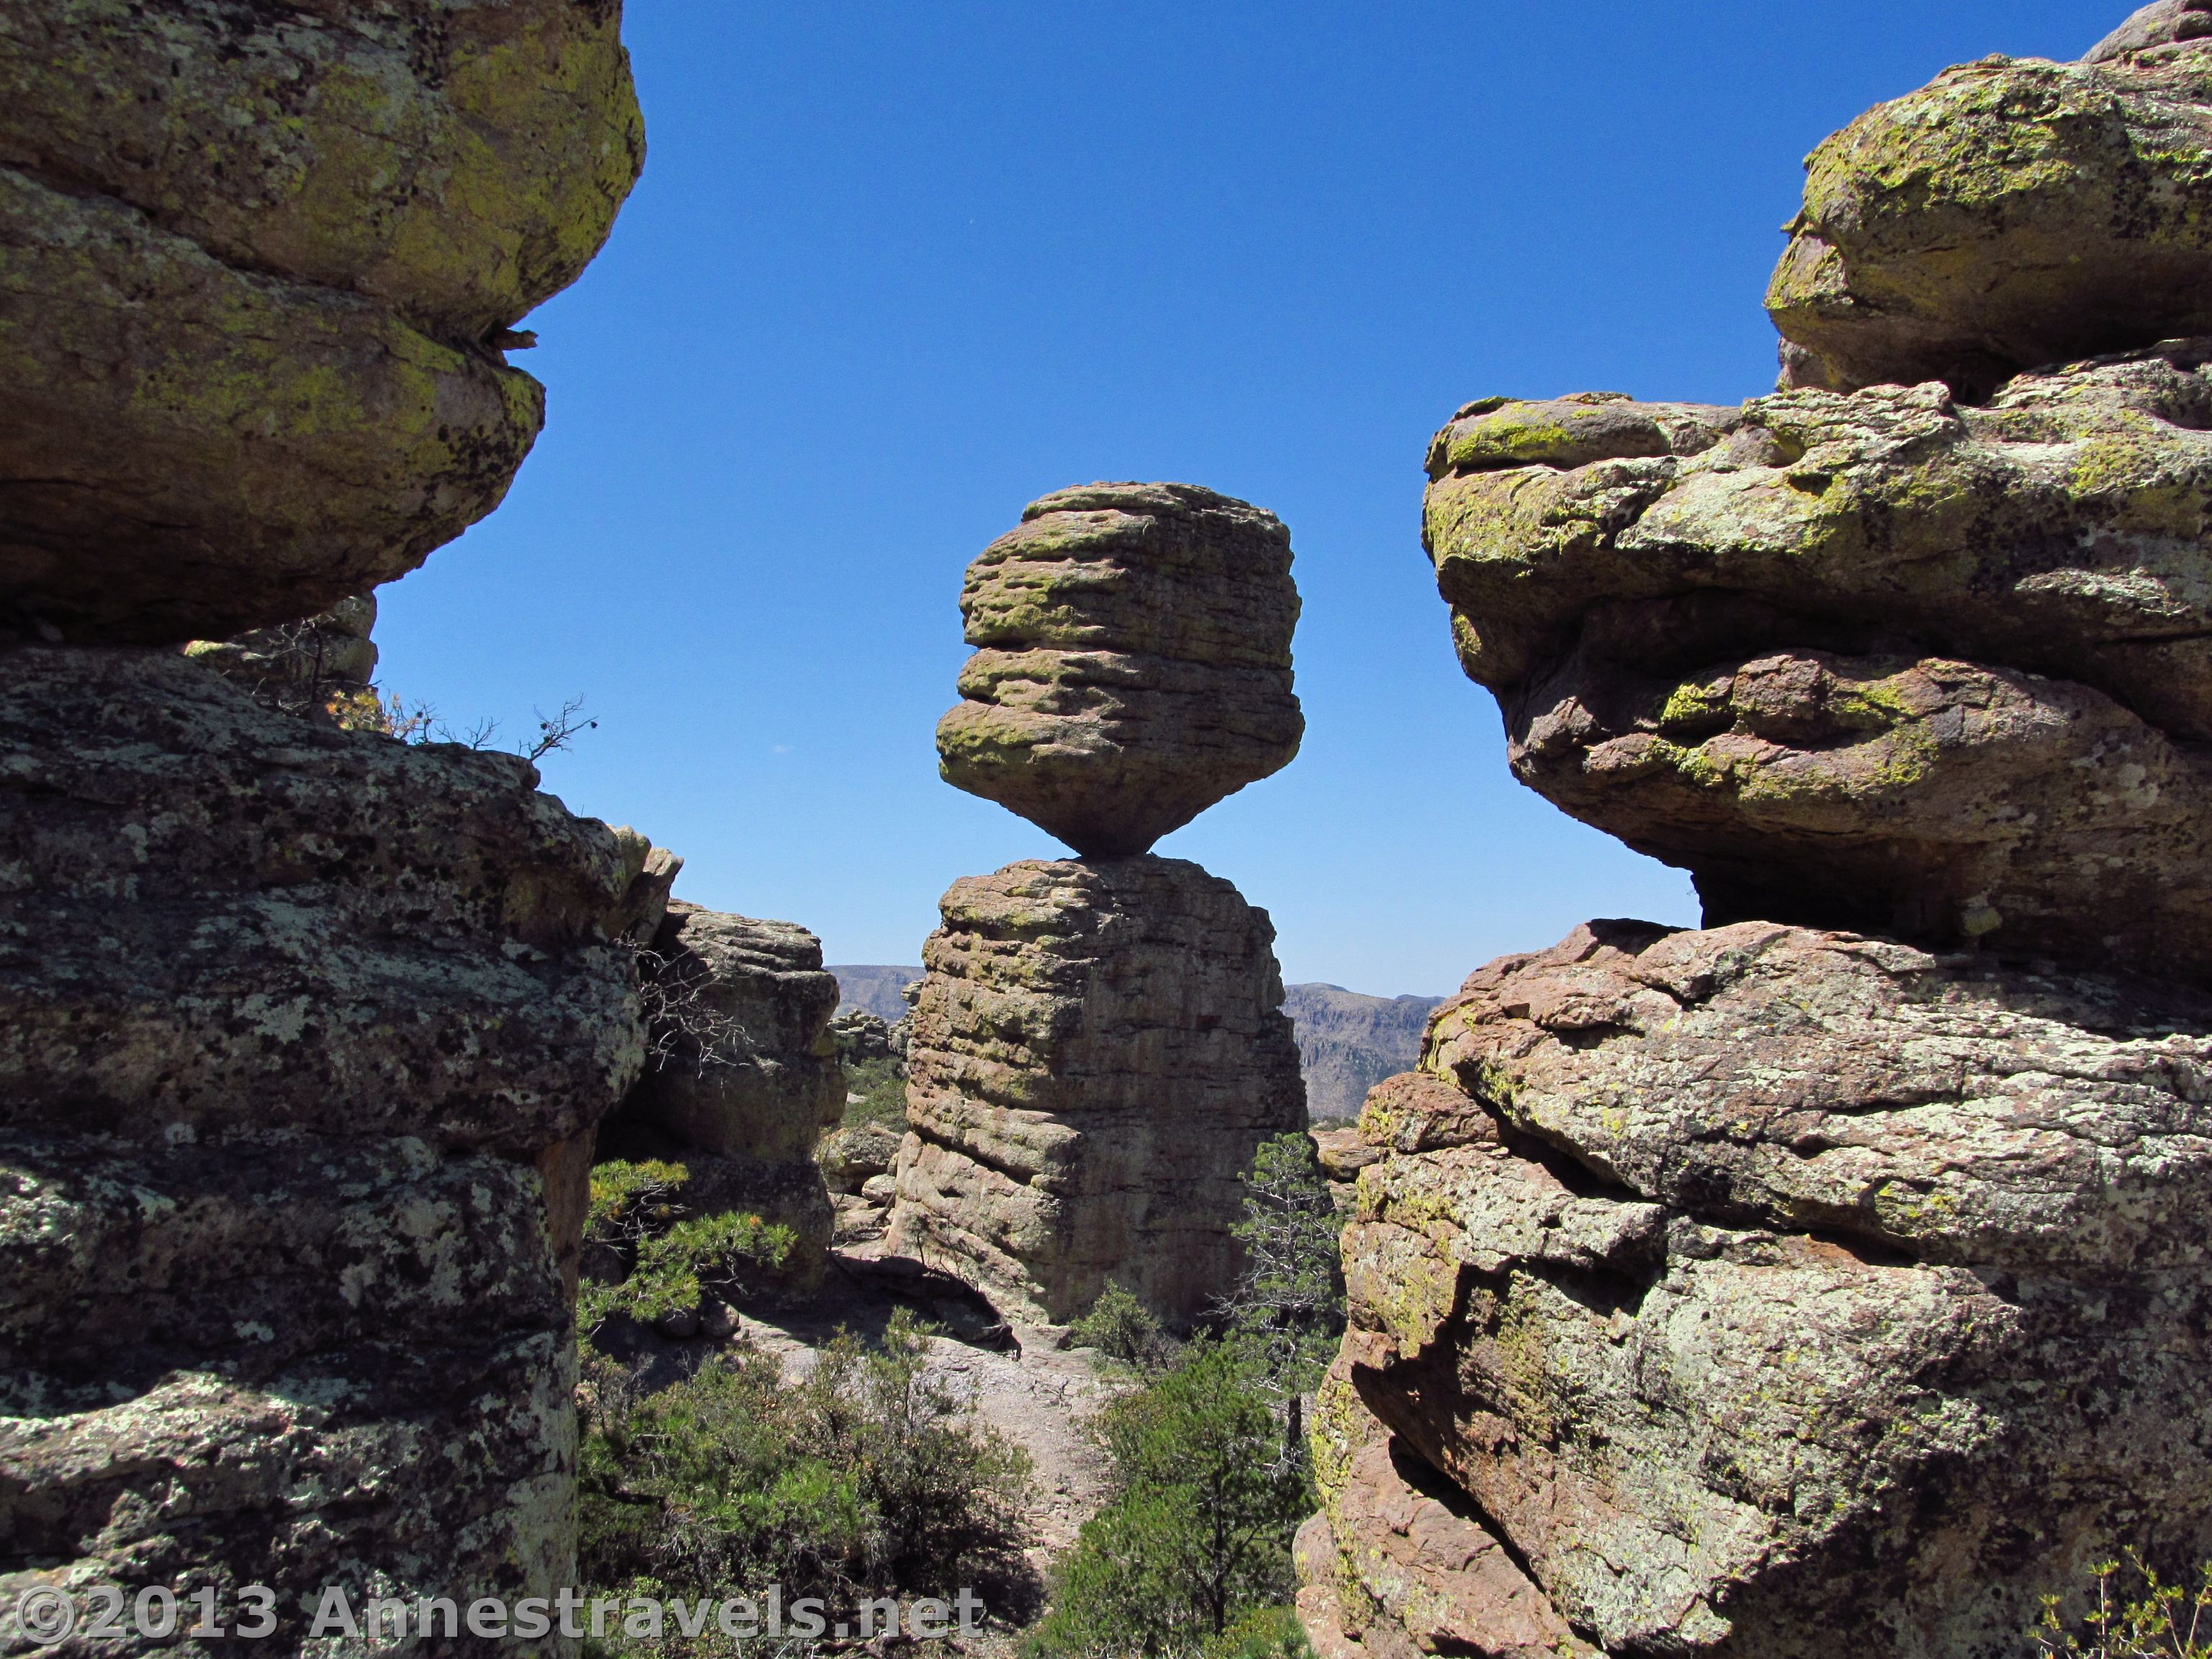 Chiricahua Loop To the Big Balanced Rock  Annes Travels